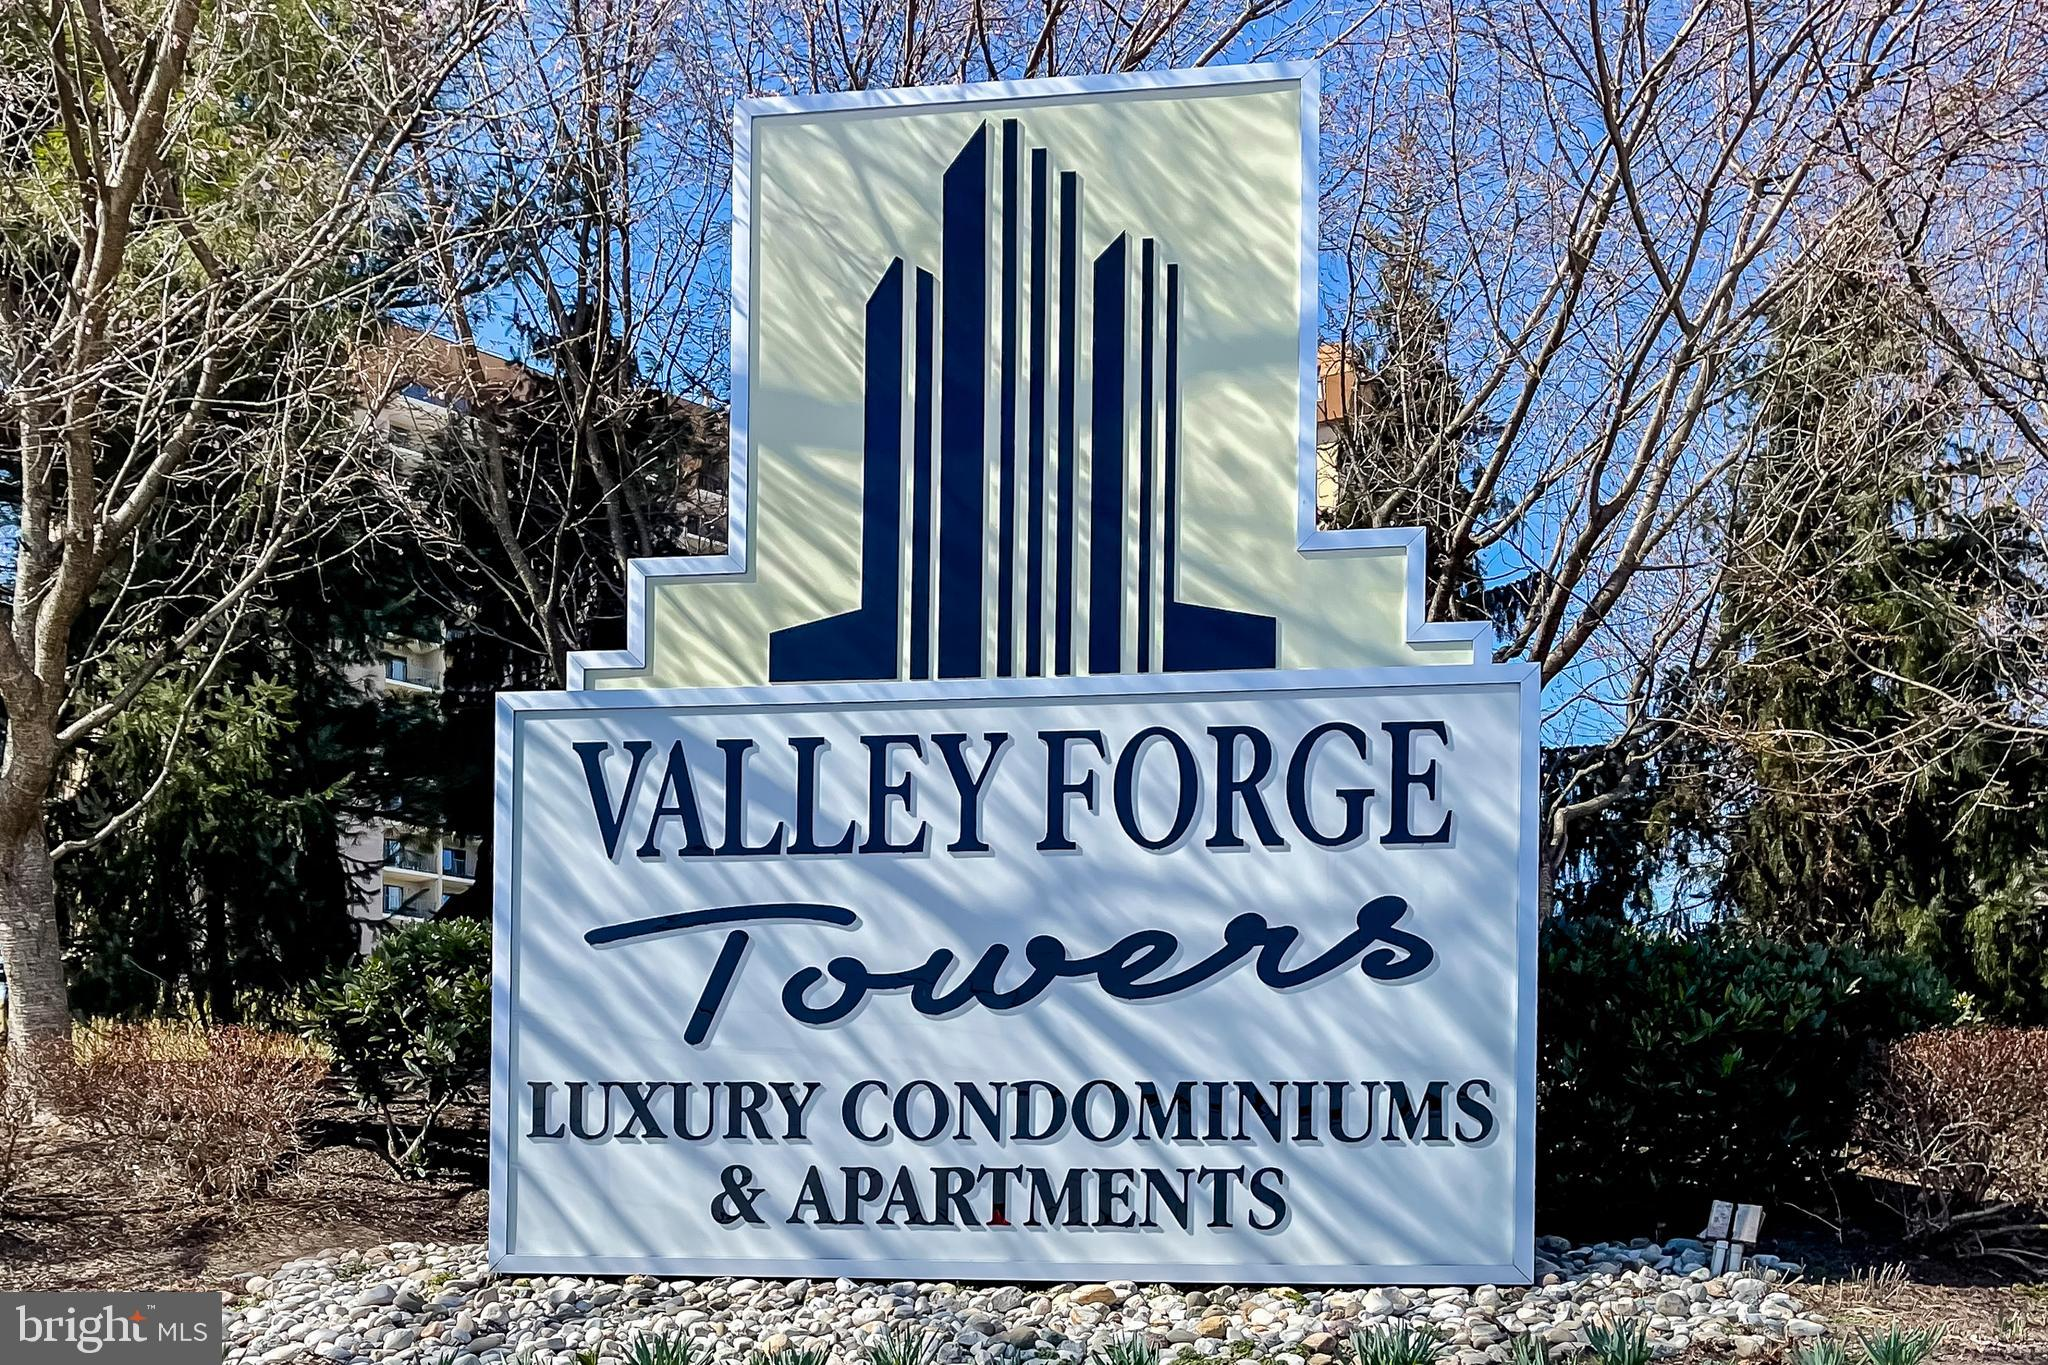 This beautifully renovated condo in Valley Forge Towers has everything you're looking for! This corner unit boasts 3 bedrooms, updated kitchen, and a highly desirable open concept floor plan! Kitchen updates include granite countertops, stainless smart-tech enabled double convection oven, convection microwave combo, and large island. You'll enjoy expansive views and glorious sunsets over Valley Forge Park during meal prep. The spacious and bright living and dining areas allow plenty of room for entertaining, as well as the extra-large private balcony, where quiet evenings with a book and glass of wine await. Gleaming, walnut Pergo flooring extends throughout the entire main living area and into the generously-sized bedrooms. The main bedroom offers a double closet as well as two additional closets for plenty of storage, additional access to the balcony, and updated main bath. The ample hall bath features the conveniently located washer and dryer. There are two water heaters, both newer, and more than enough storage with an extra entryway closet, balcony closet, and additional storage room nearby. This community features an array of amenities such as indoor/outdoor pool, fitness center, playground, and tennis, volleyball, and basketball courts, all included with your HOA fee! Close to the King of Prussia mall and countless options for fine and casual dining, Valley Forge Park, and easy access to Rts. 76, 422, and other major roadways! This is one you won't want to miss!